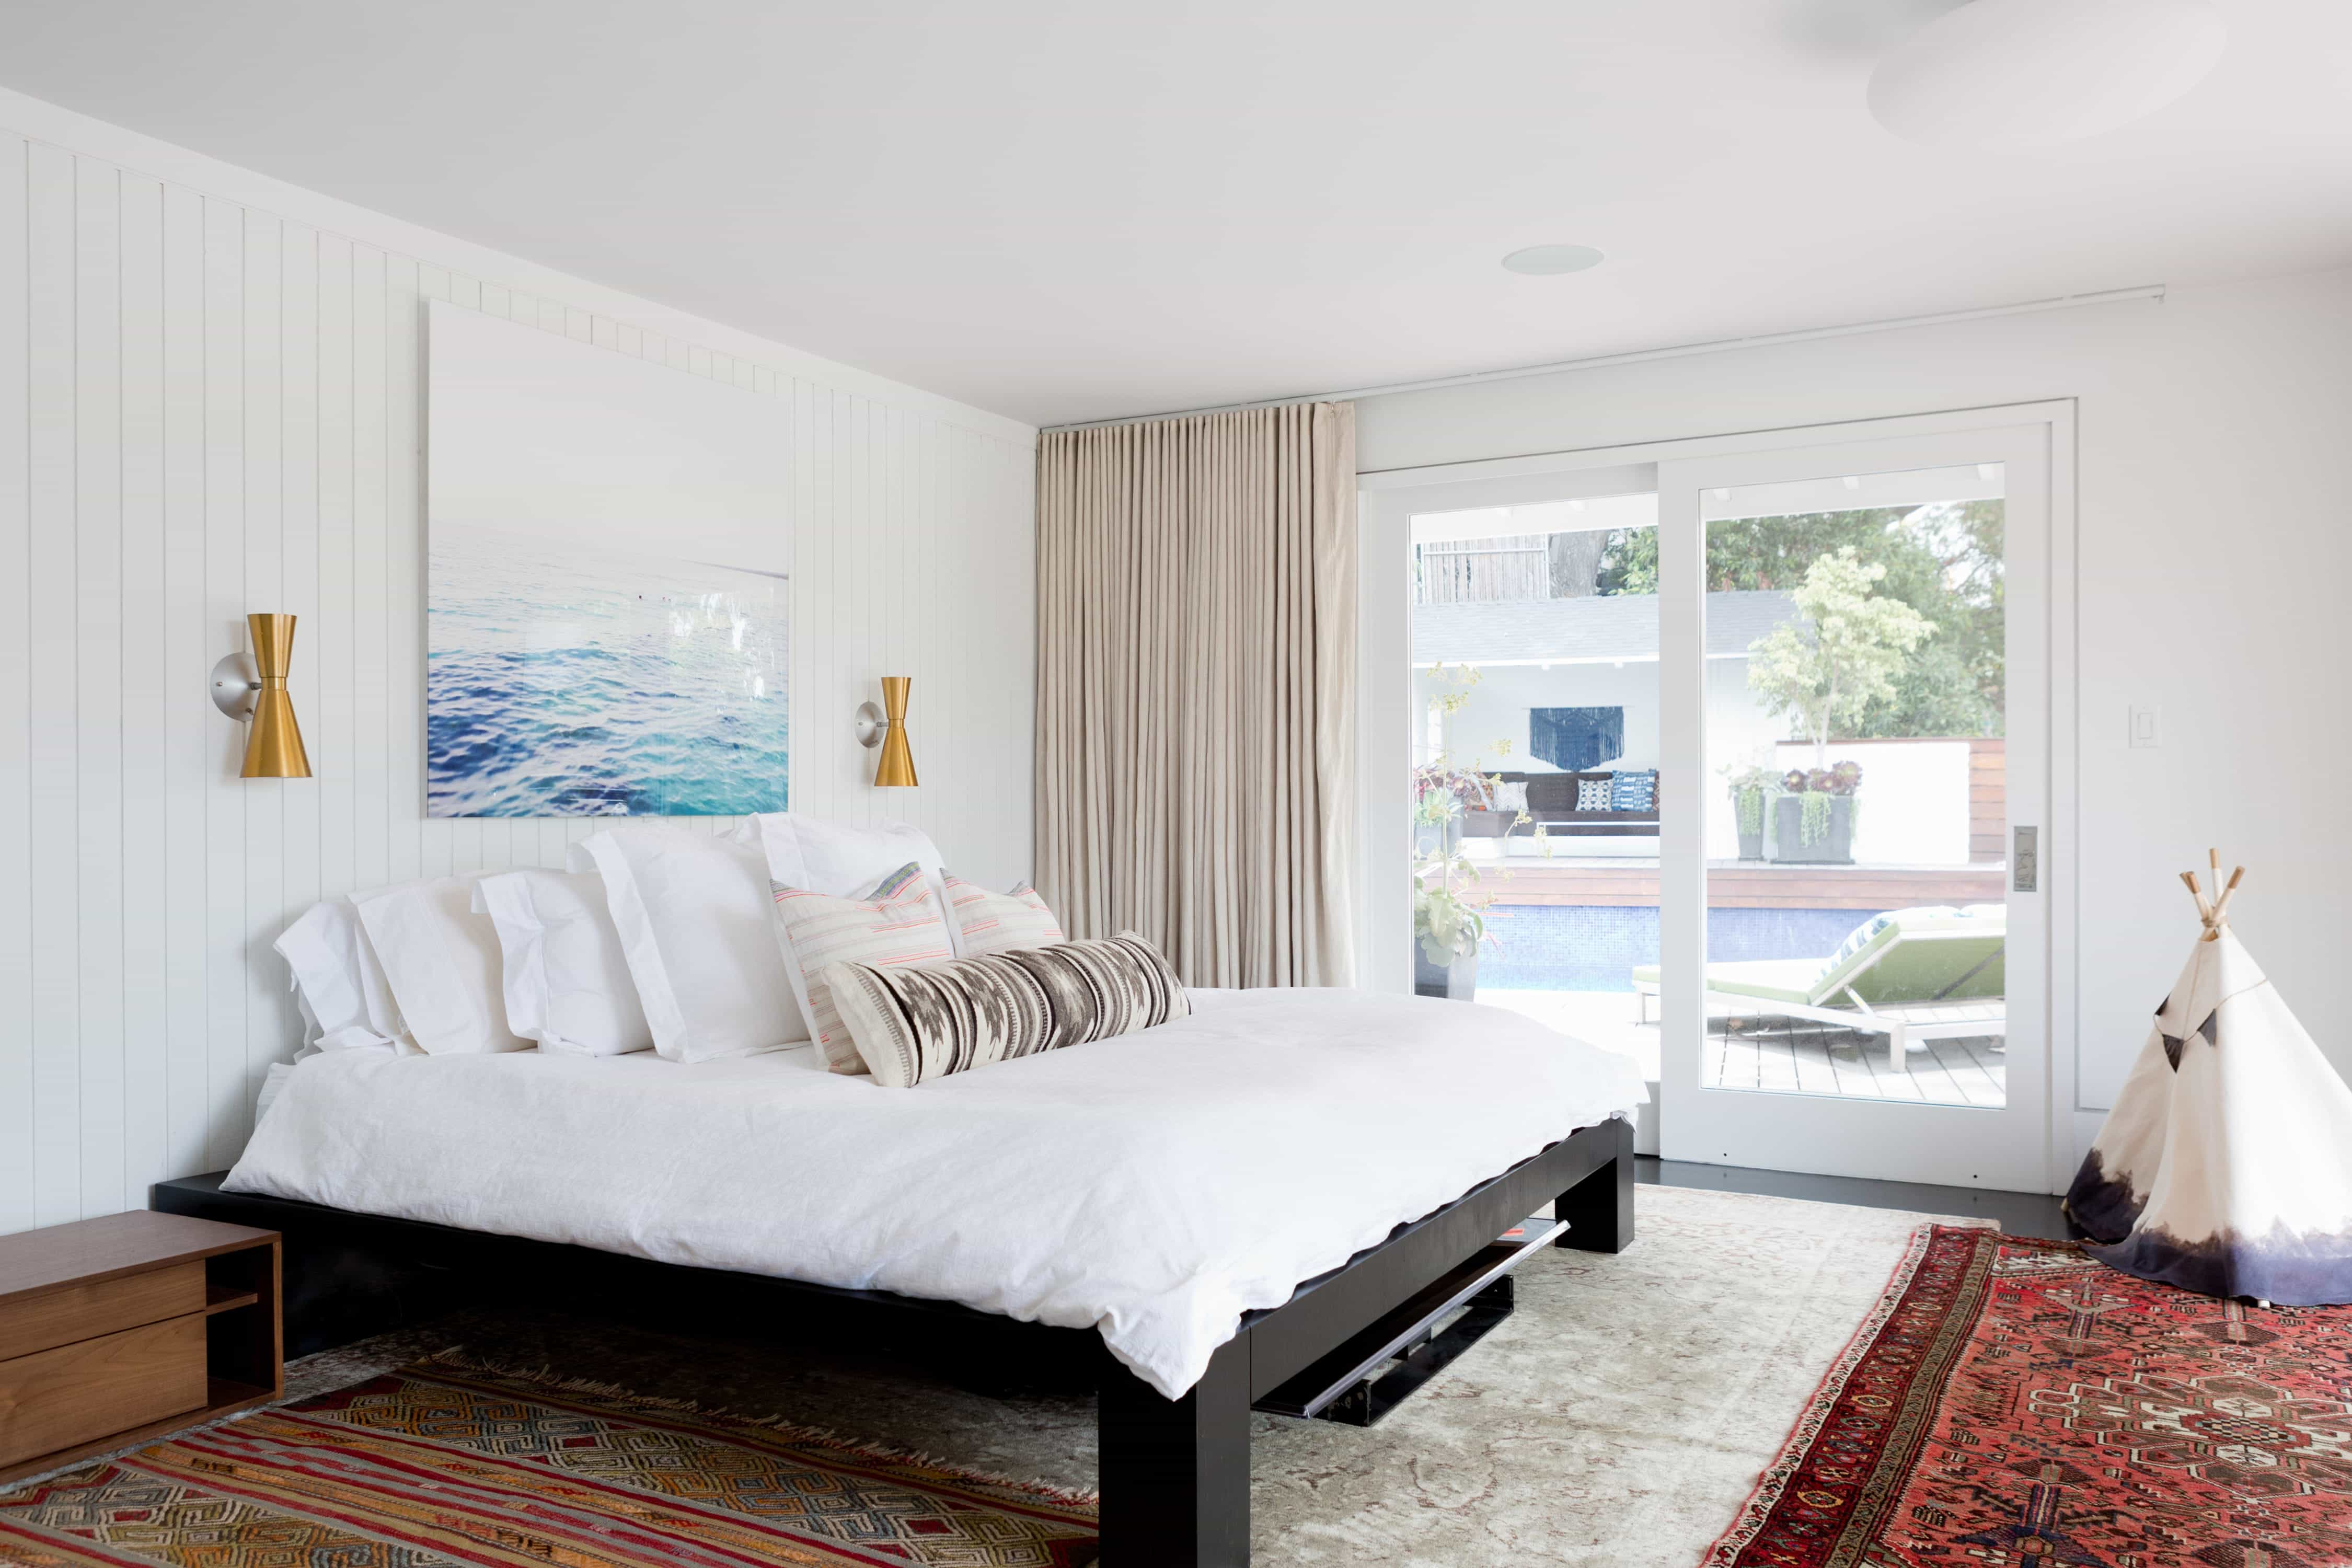 Modern Master Bedroom With Colorful Patterned Rugs And Sliding Glass Door With Curtain (Image 19 of 27)